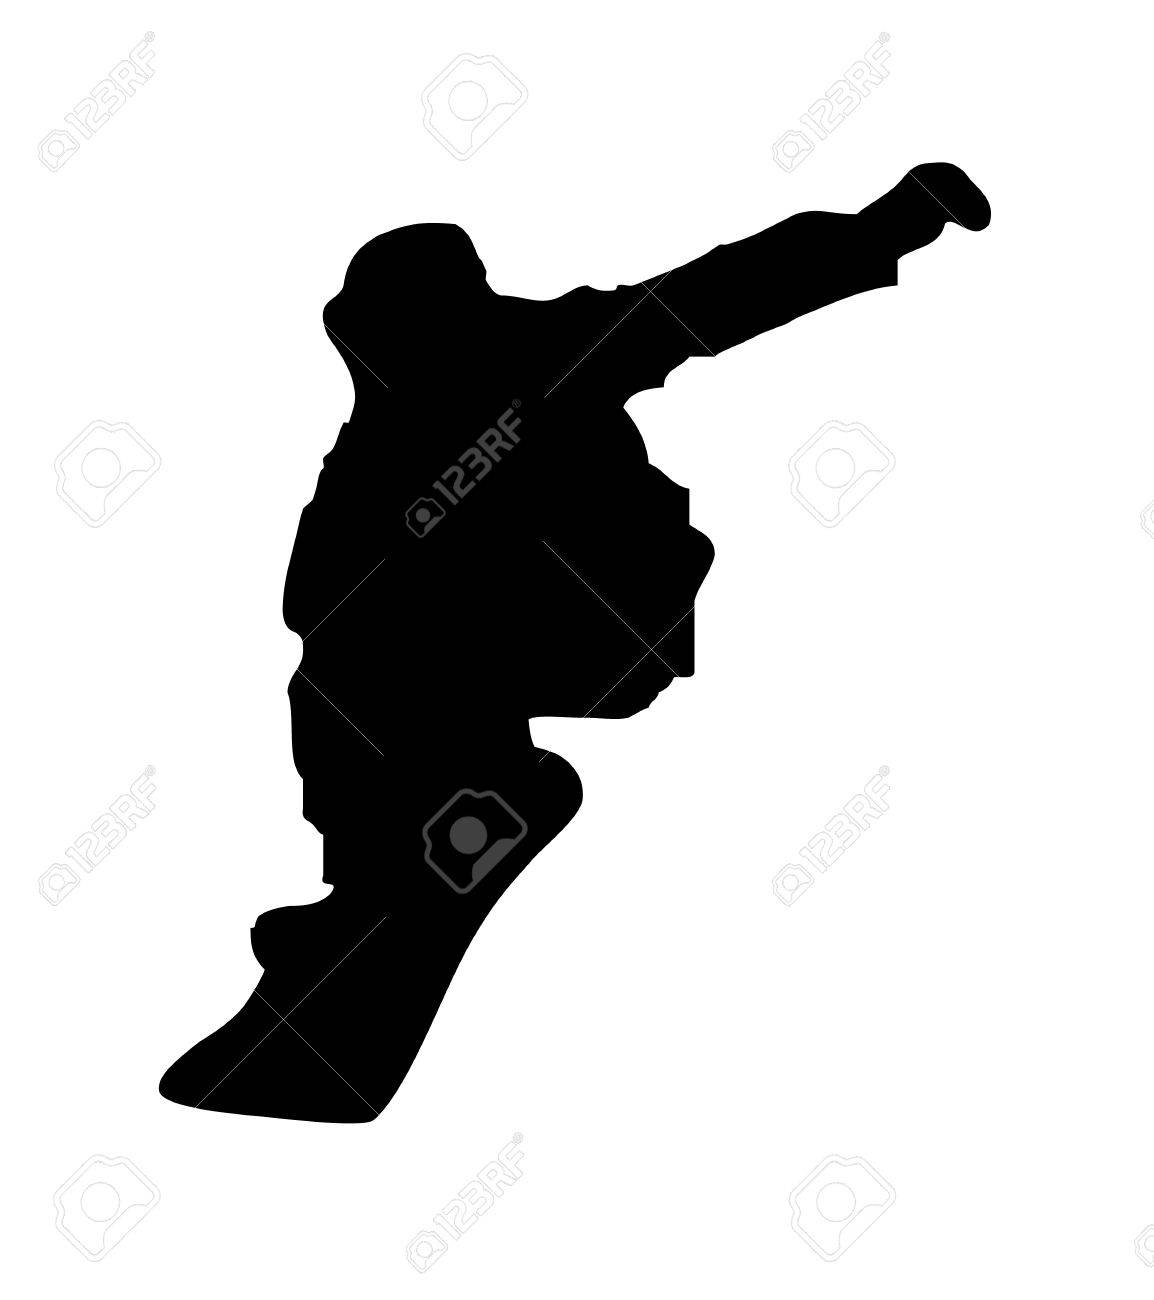 An abstract vector illustration of a snowboarder during a grab. Stock Vector - 11987356